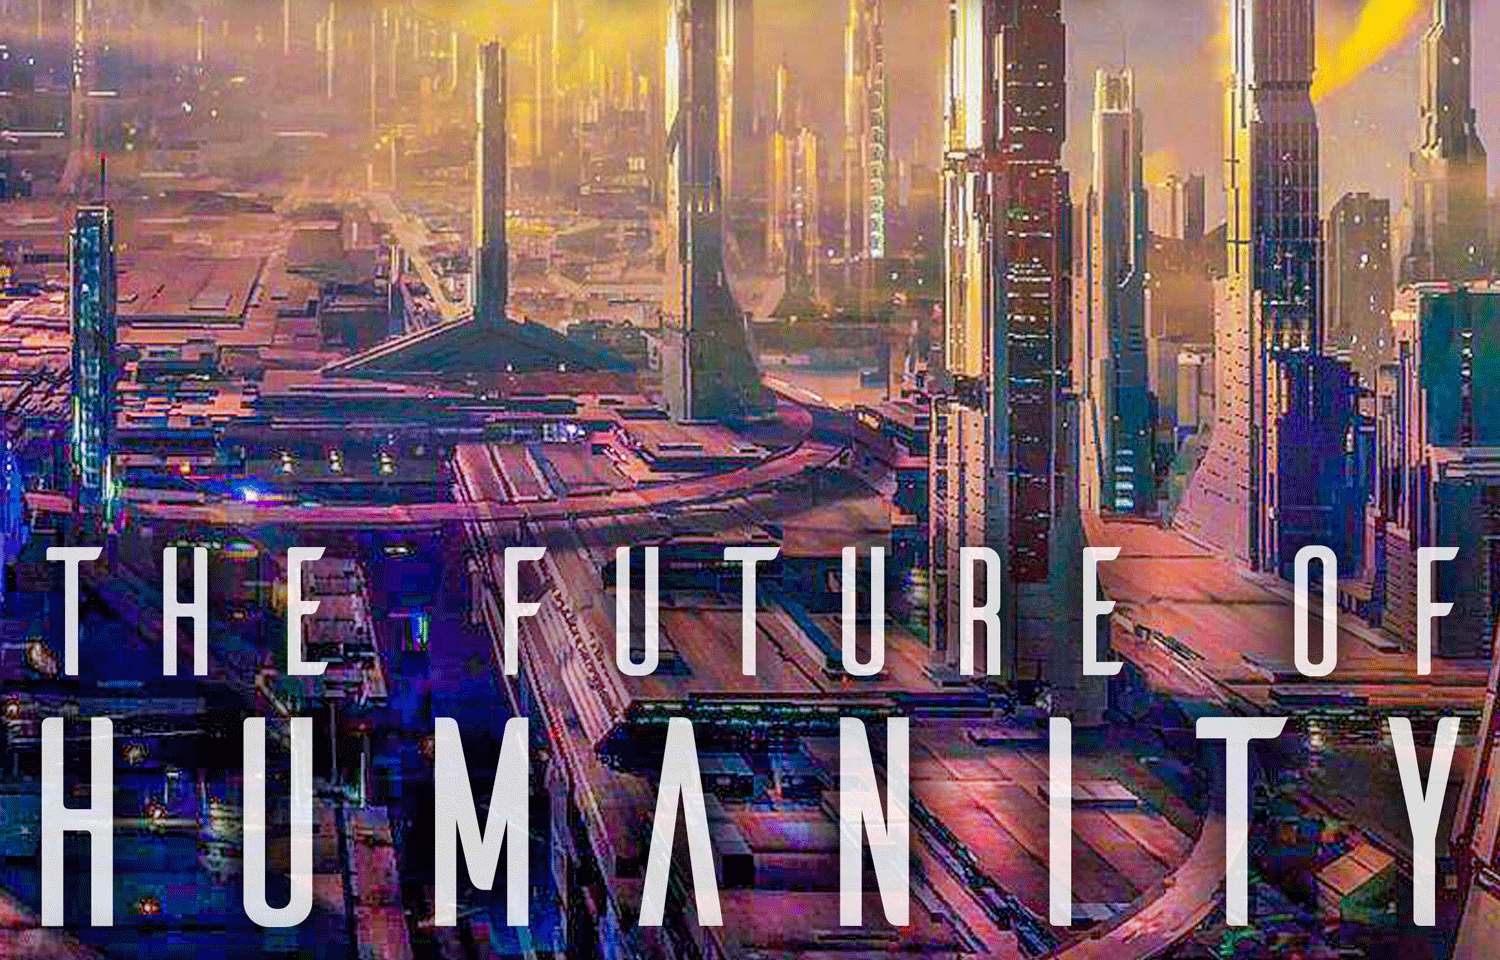 Futuristic cityscape with text